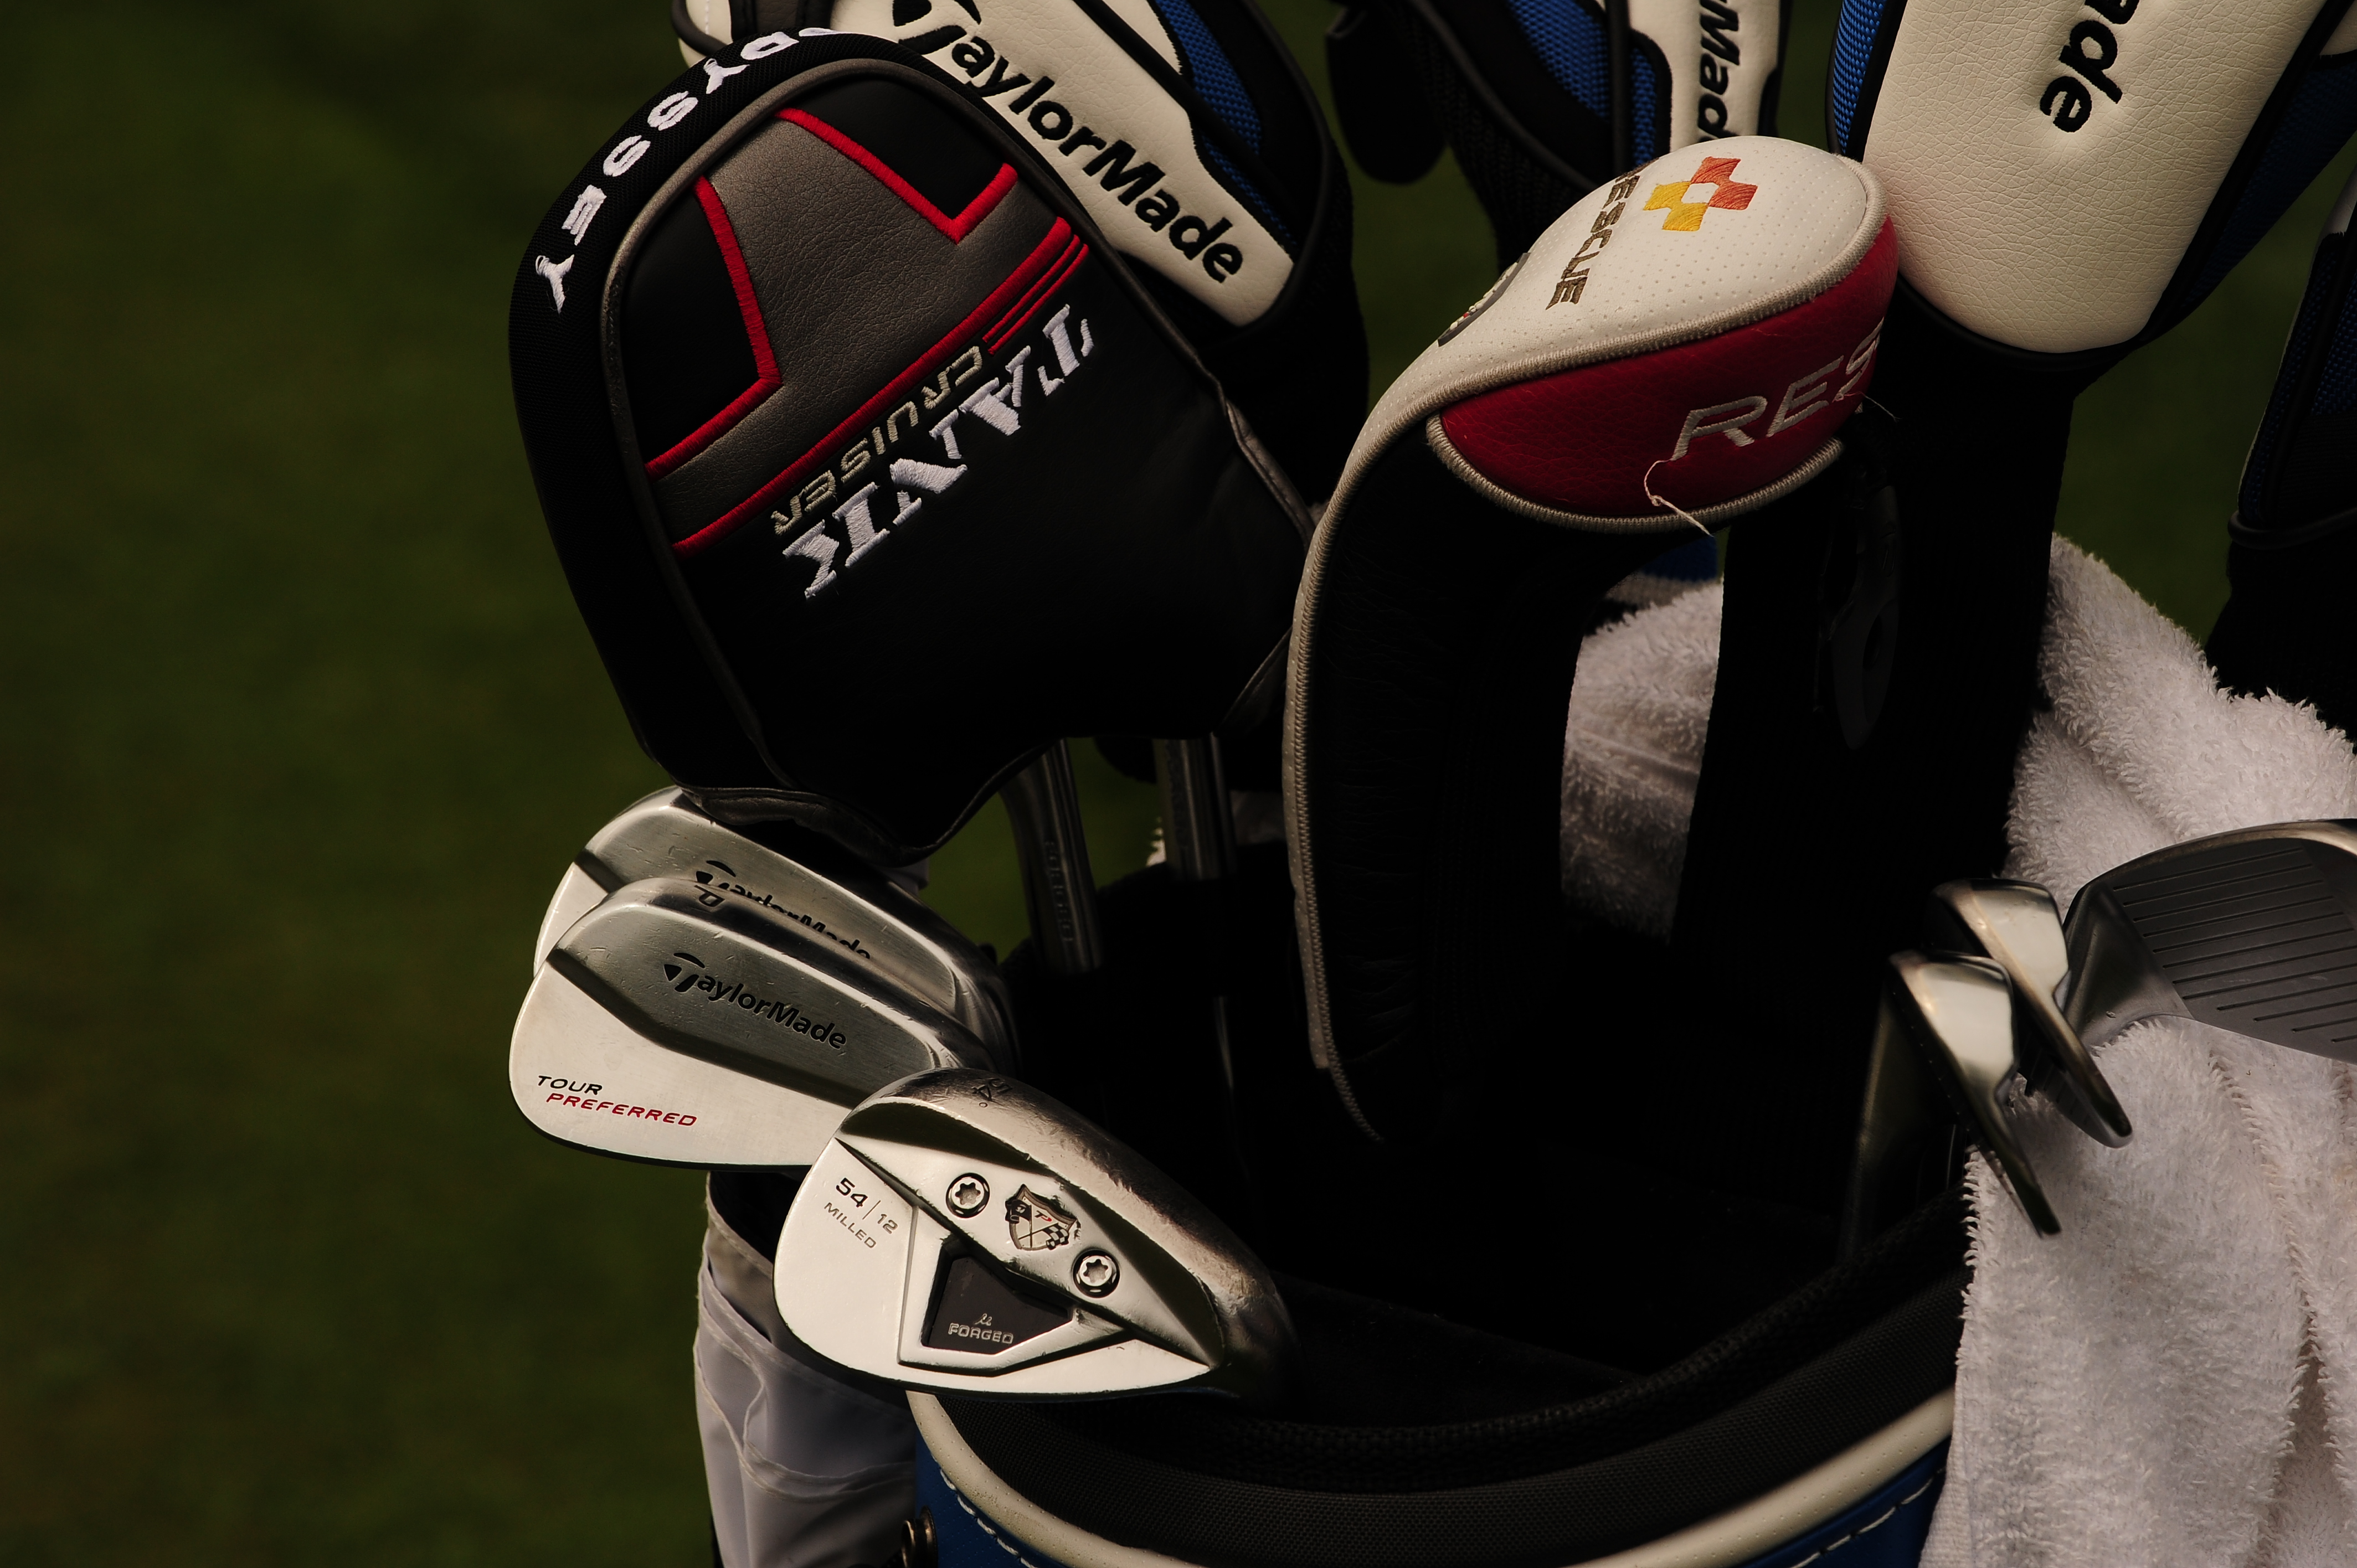 TaylorMade player Paul Goydos carries Tour Preferred MB irons, an old TP wedge and a collection of SLDR woods.